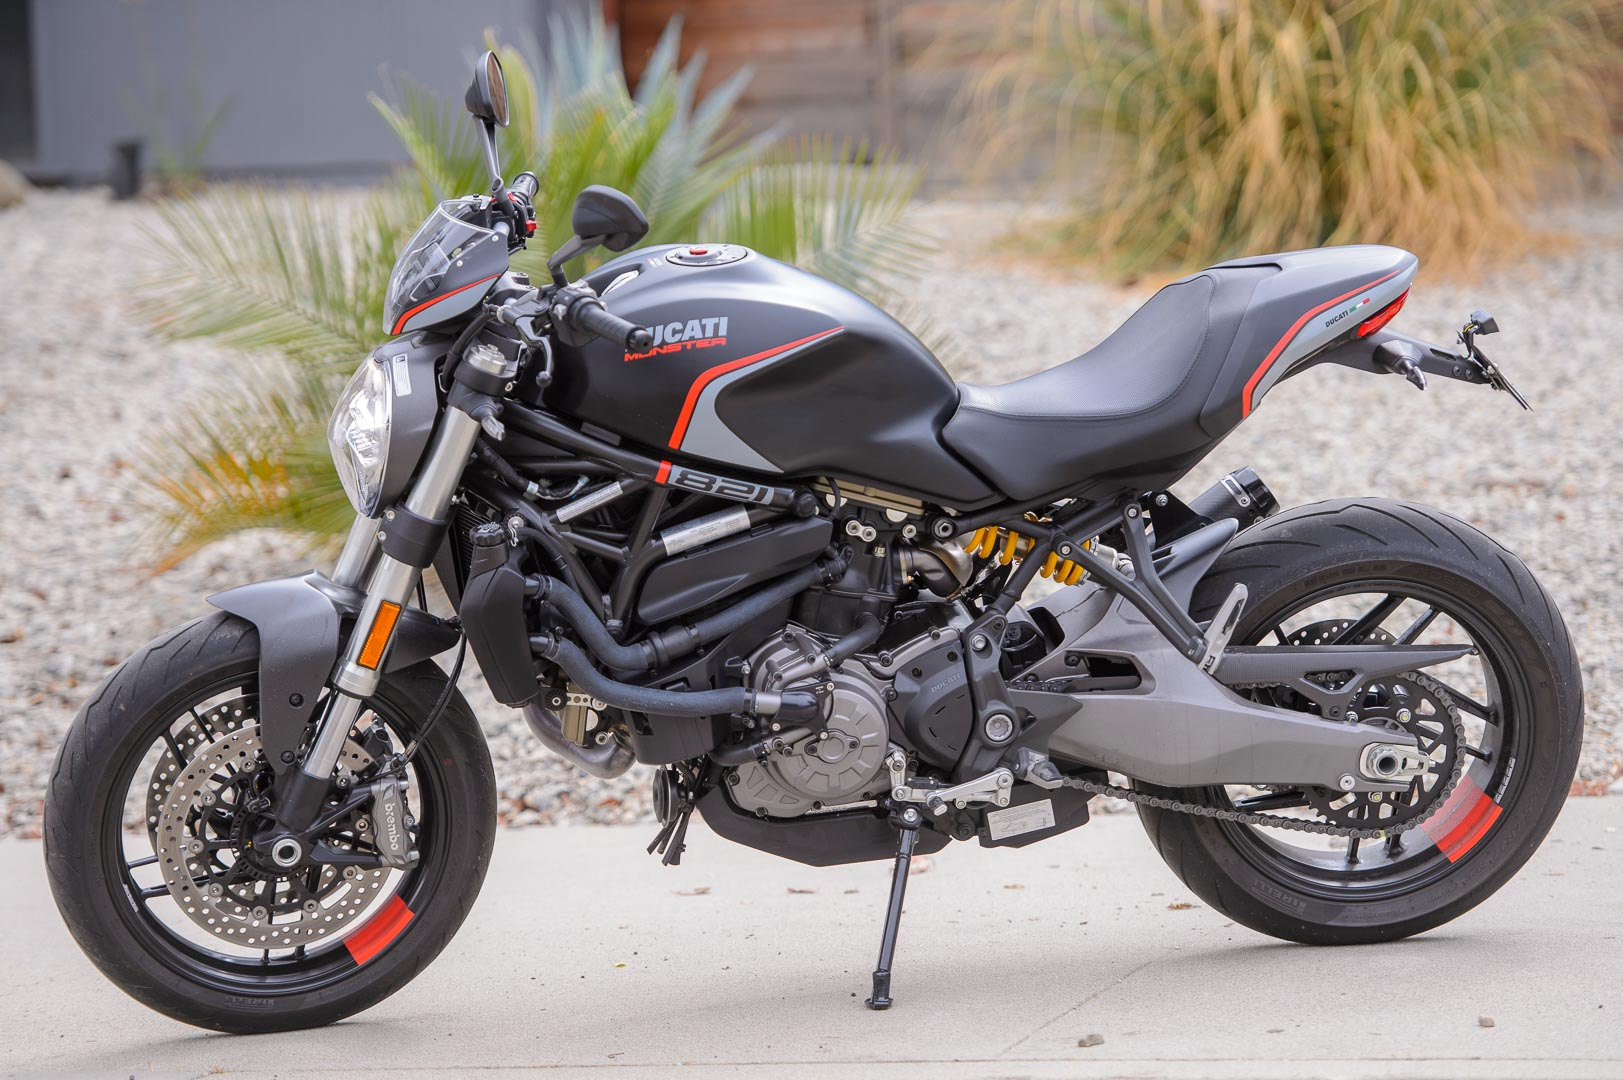 2020 Ducati Monster 821 Stealth Review: MSRP